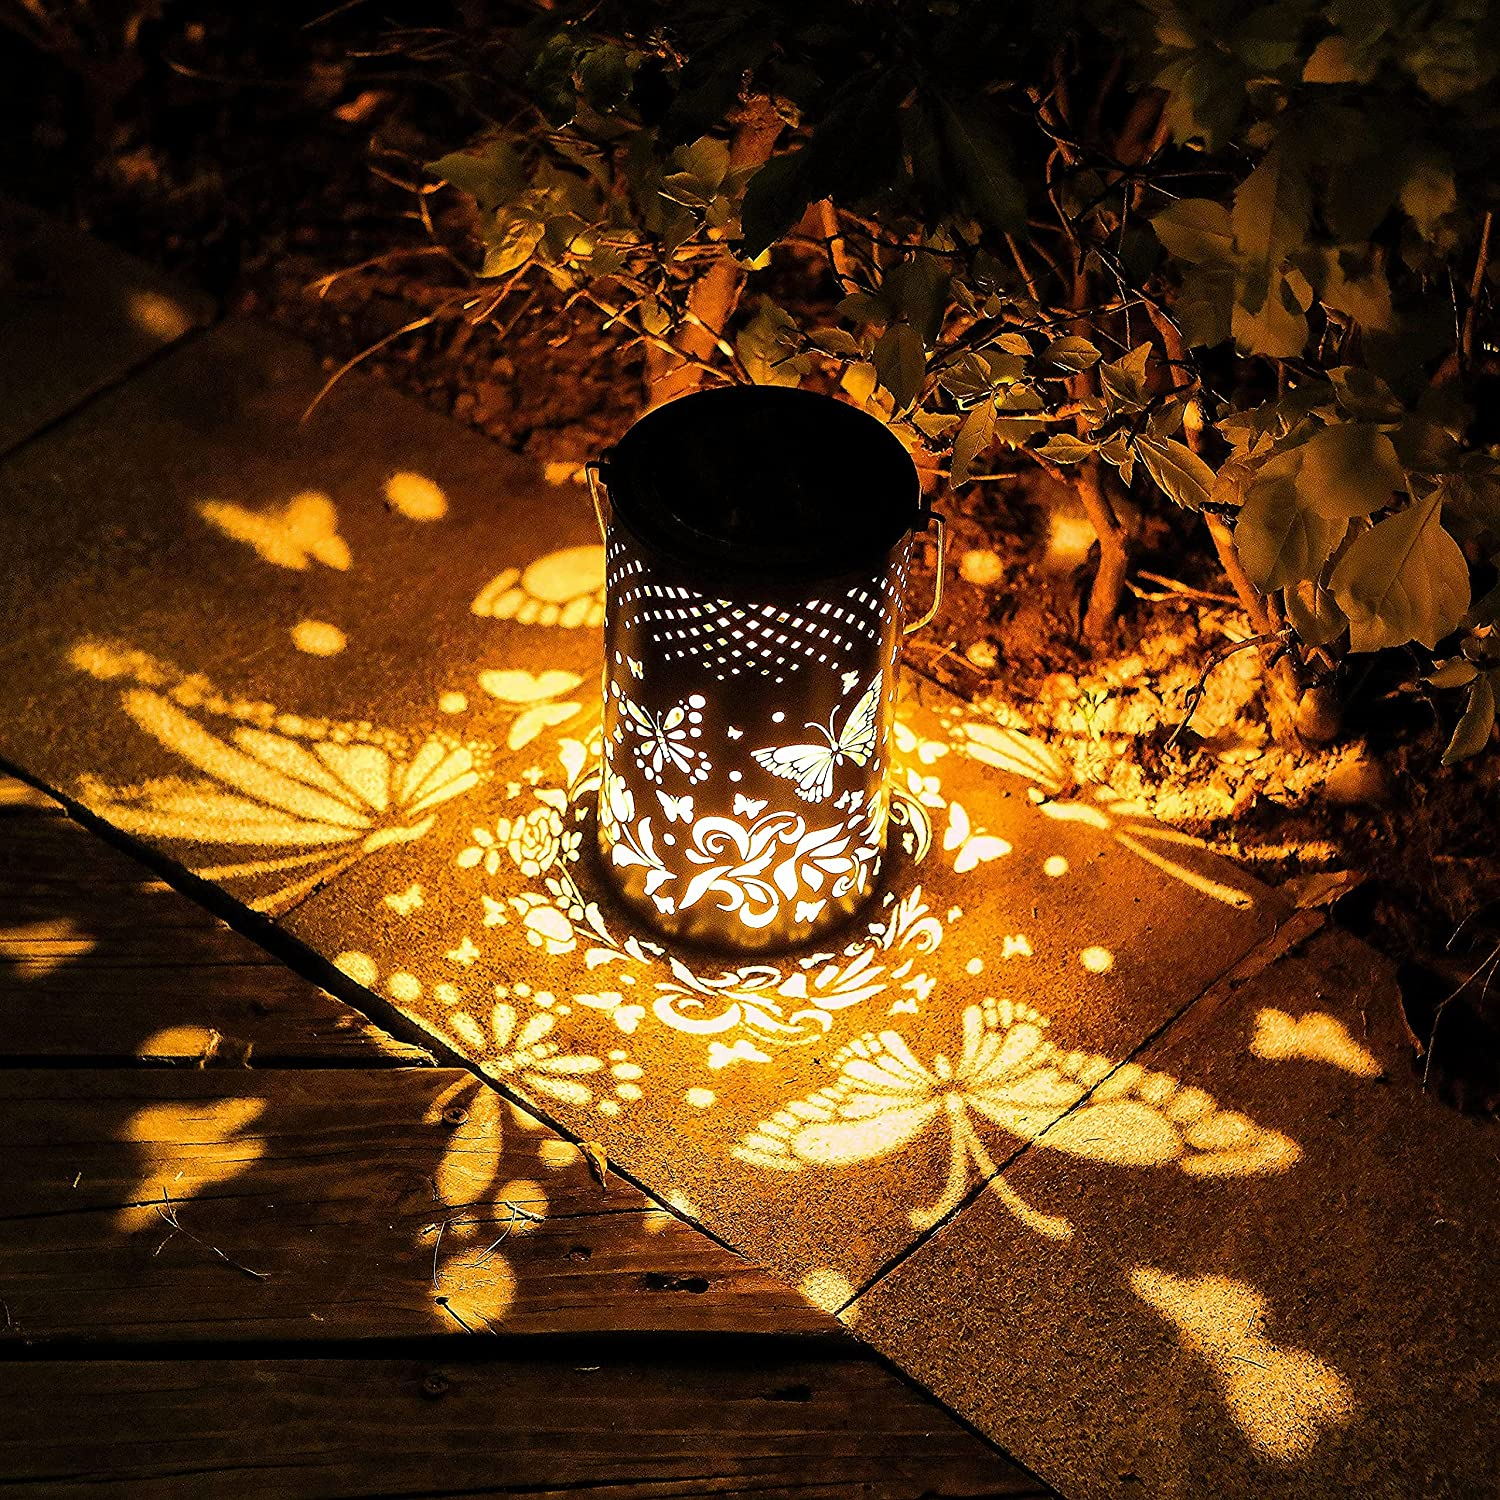 Solar Lanterns Outdoor Waterproof,Retro Metal Led Decorative Hanging Solar Lights for Yard,Garden,Patio,Table,Lawn,(Warm White Butterfly )